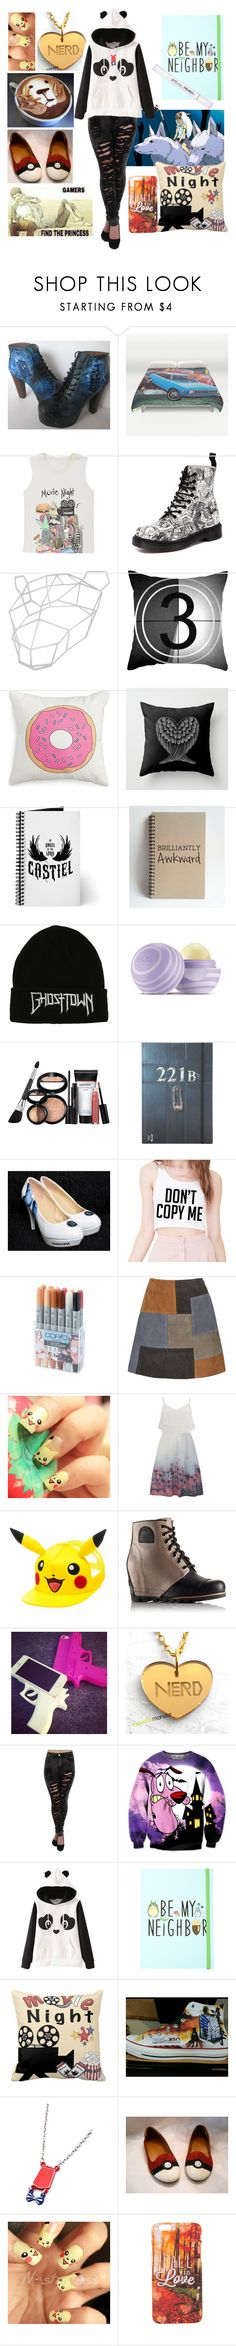 """0266"" by doglover43 ❤ liked on Polyvore featuring Valfré, Dr. Martens, Bijules, Dot & Bo, Keeco, Journal Standard, Hot Topic, Urban Decay, Eos and Laura Geller"